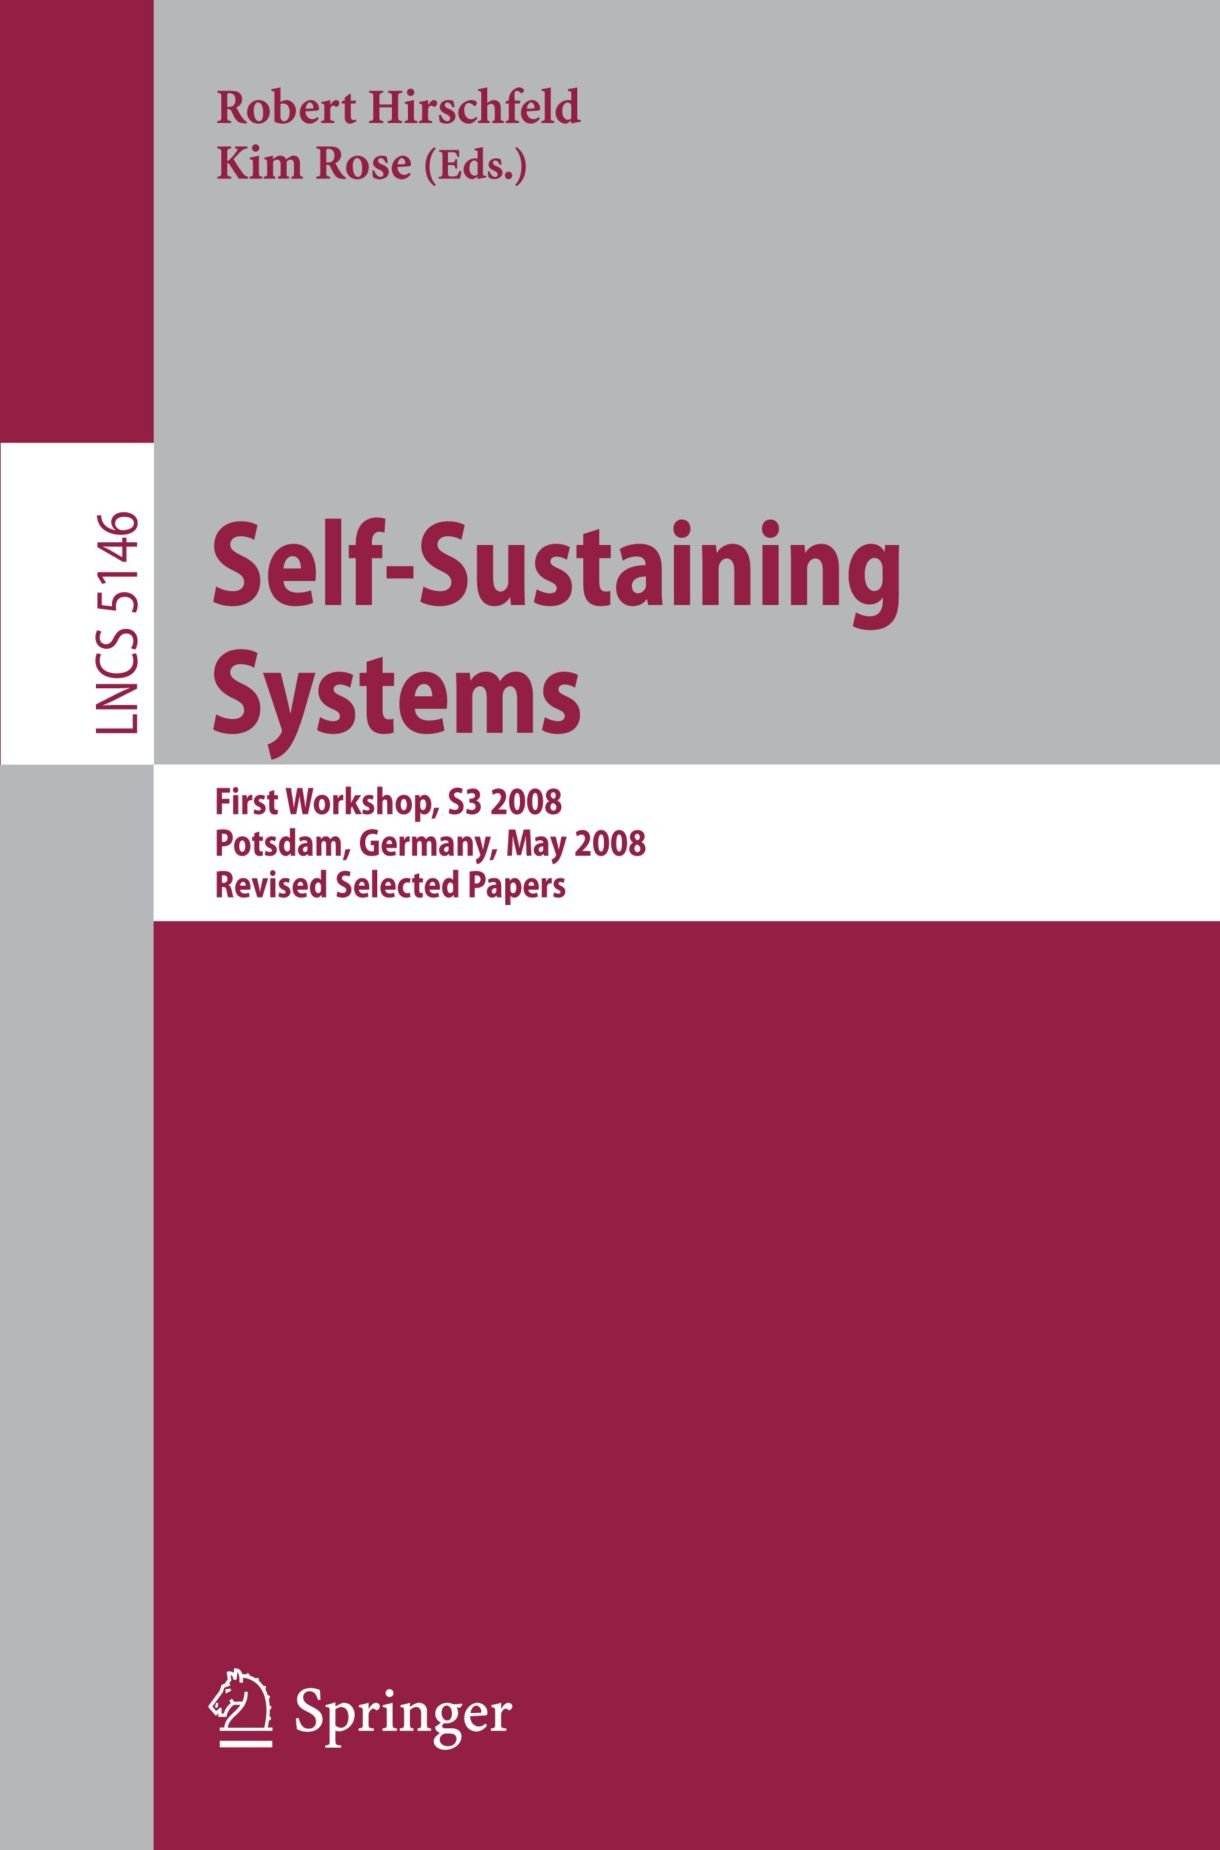 Self-Sustaining Systems: First Workshop, S3 2008